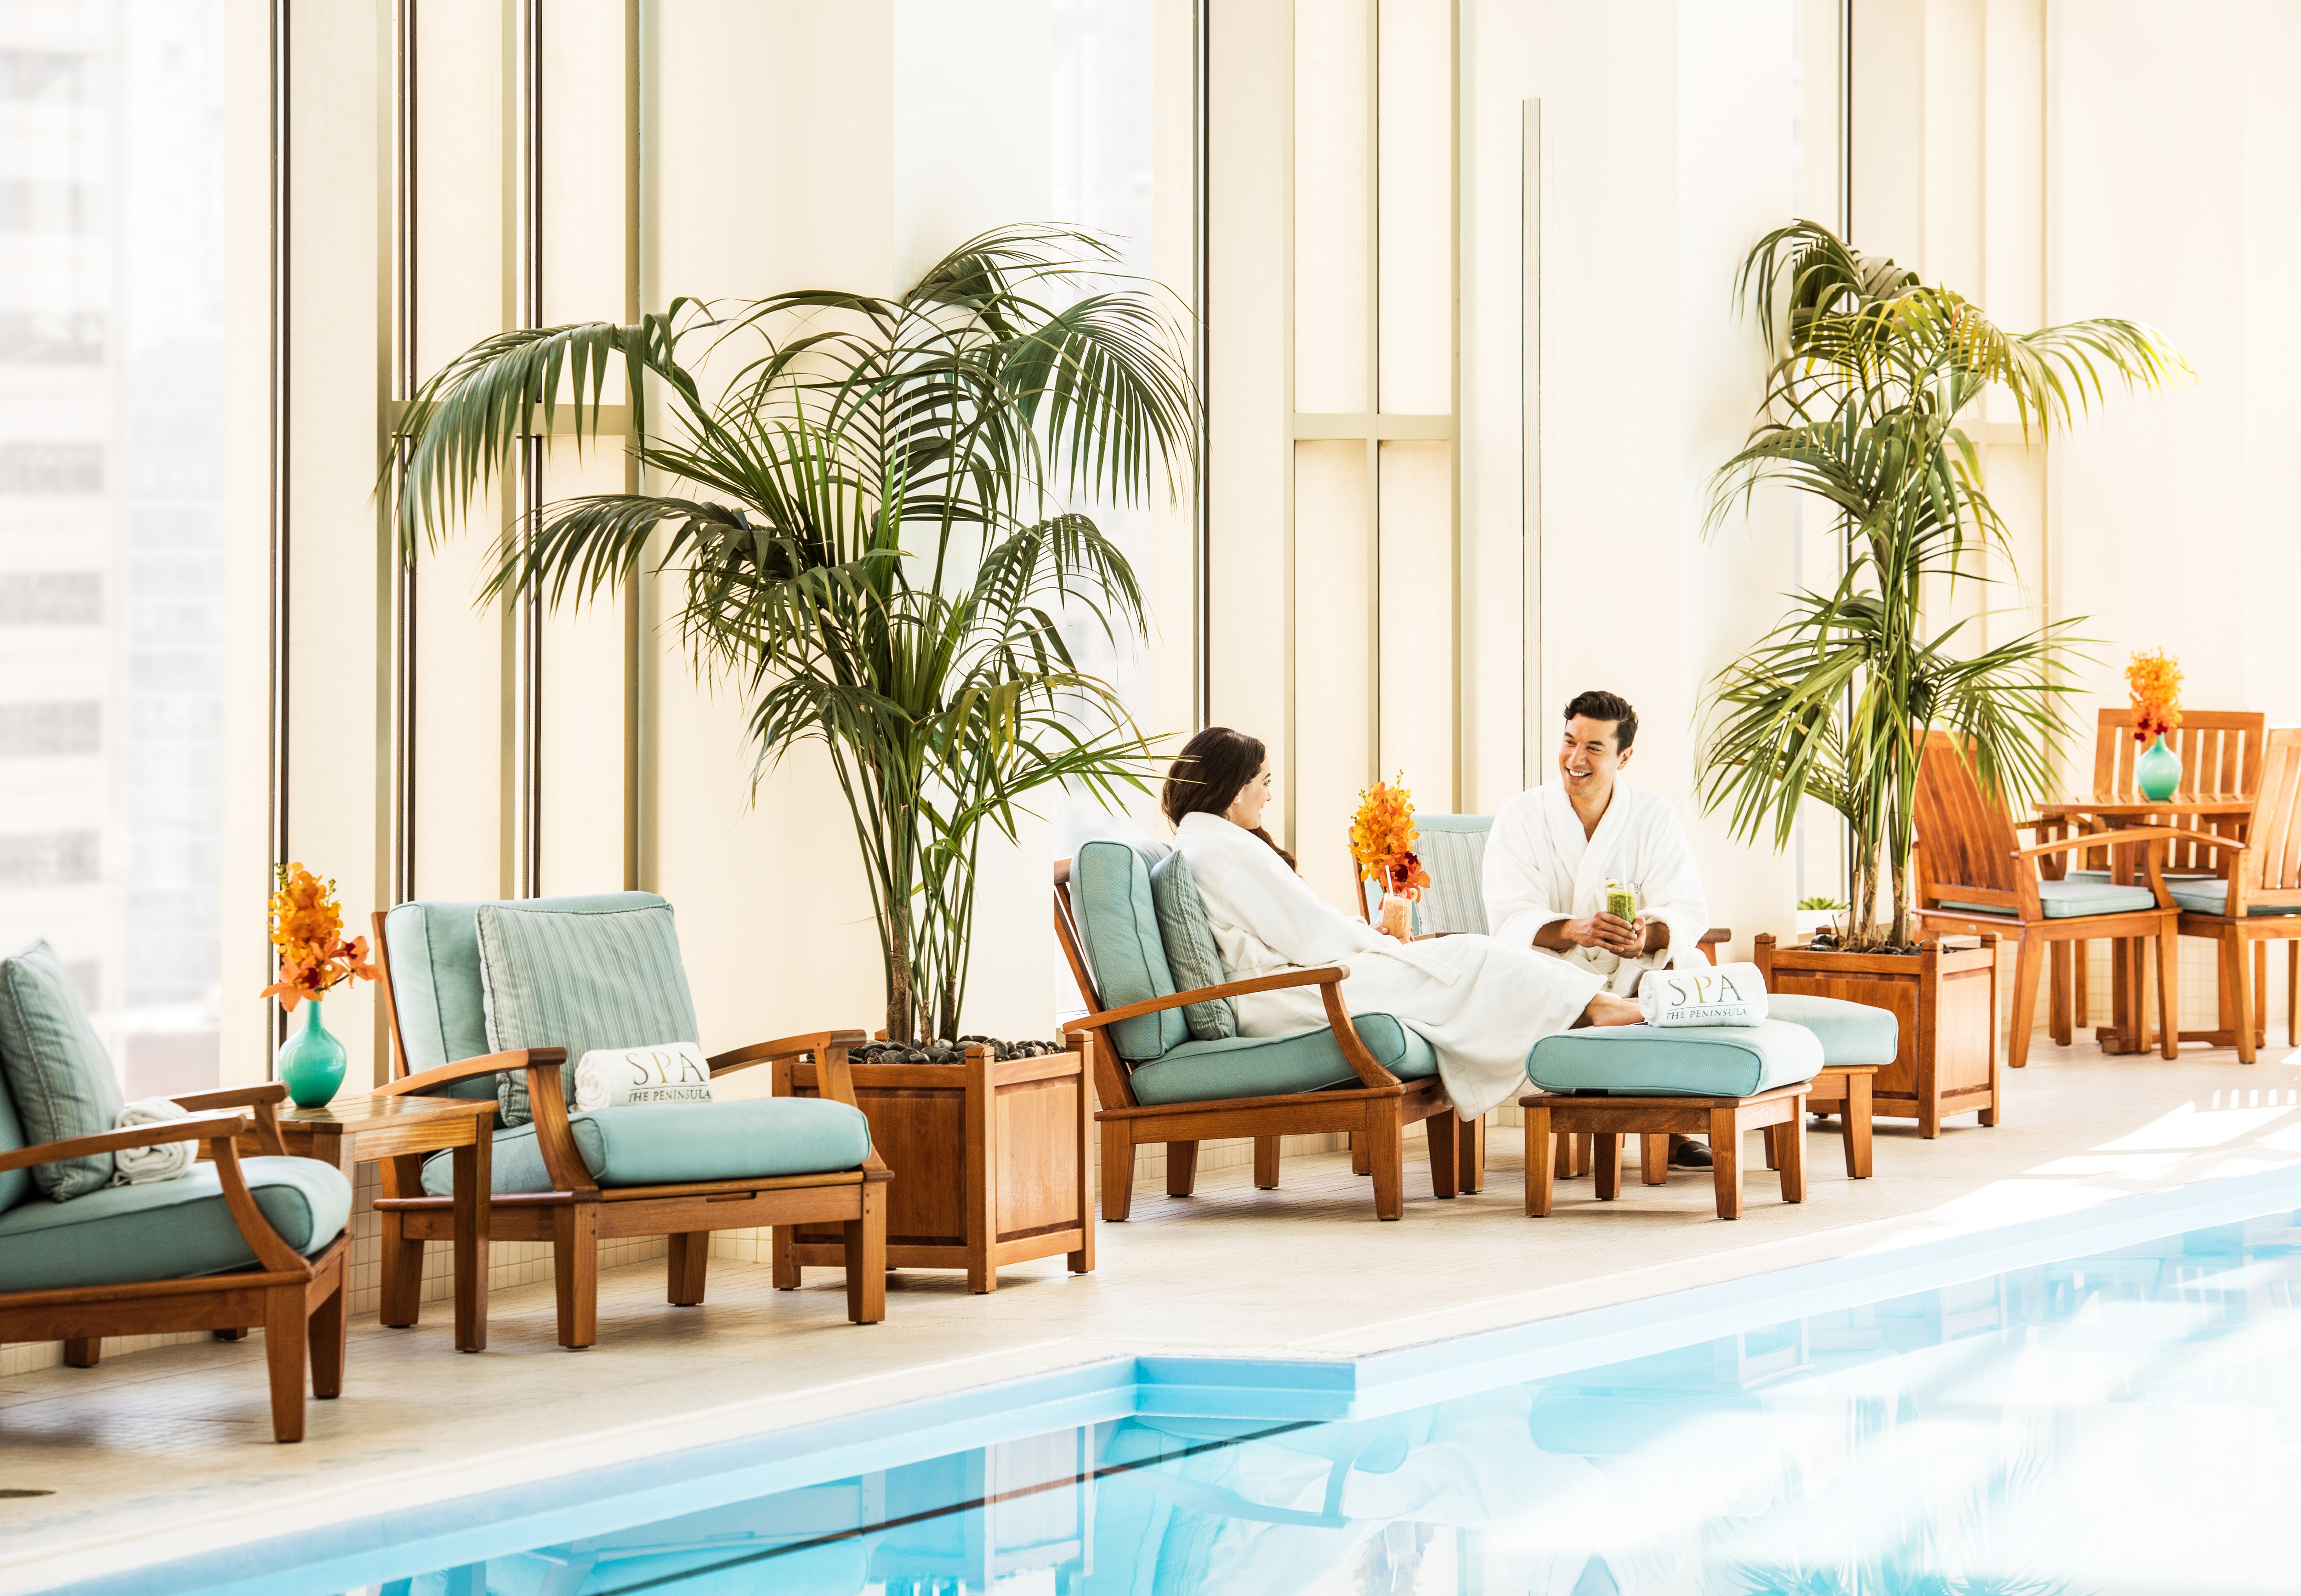 The Peninsula Spa The Magnificent Mile